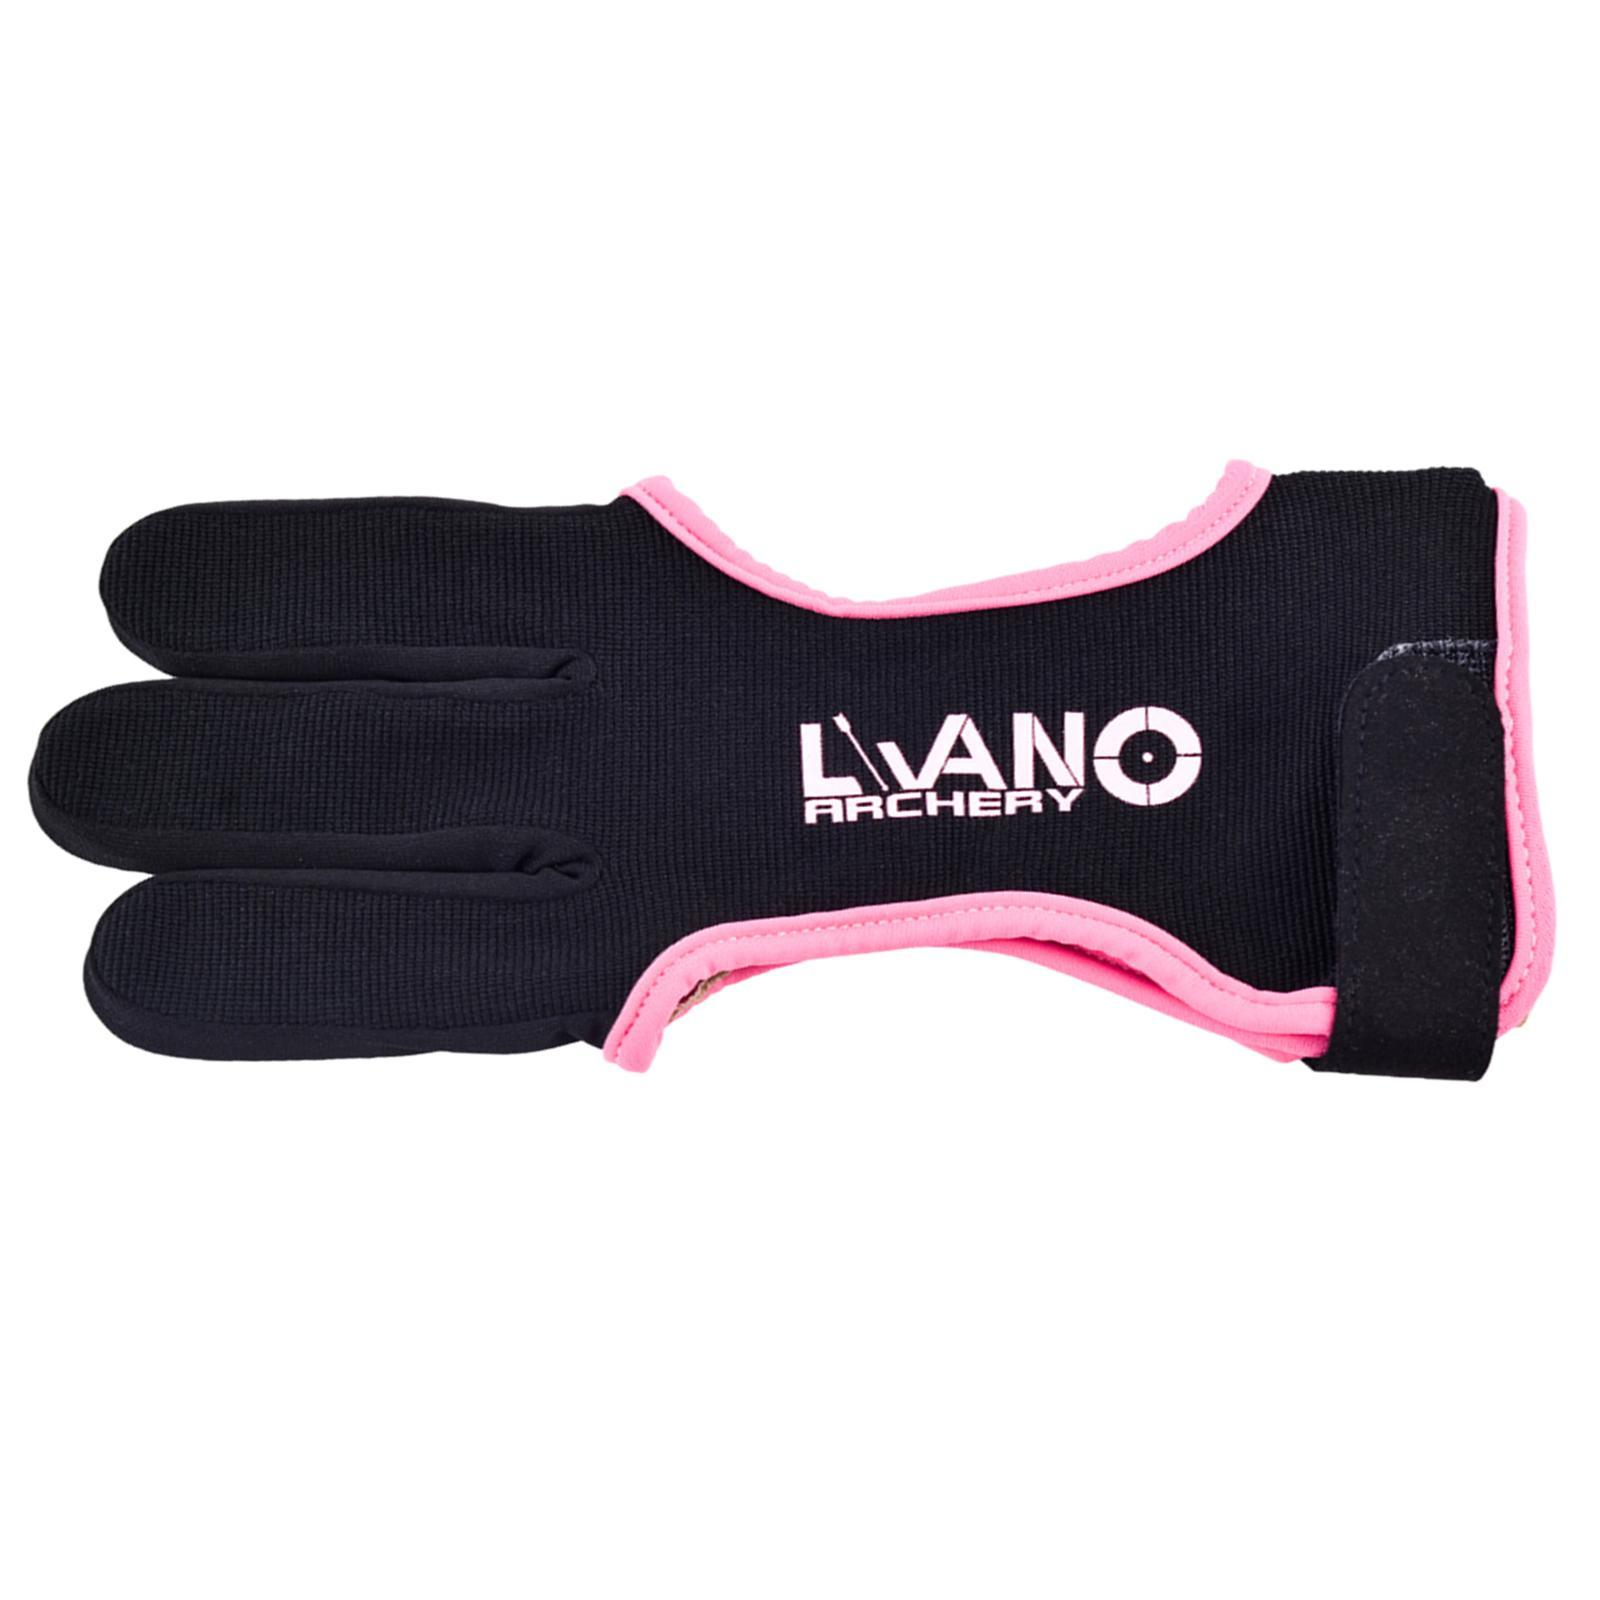 thumbnail 10 - 1 Piece Archery Gloves Shooting Hunting Leather Three Finger Protector for Youth